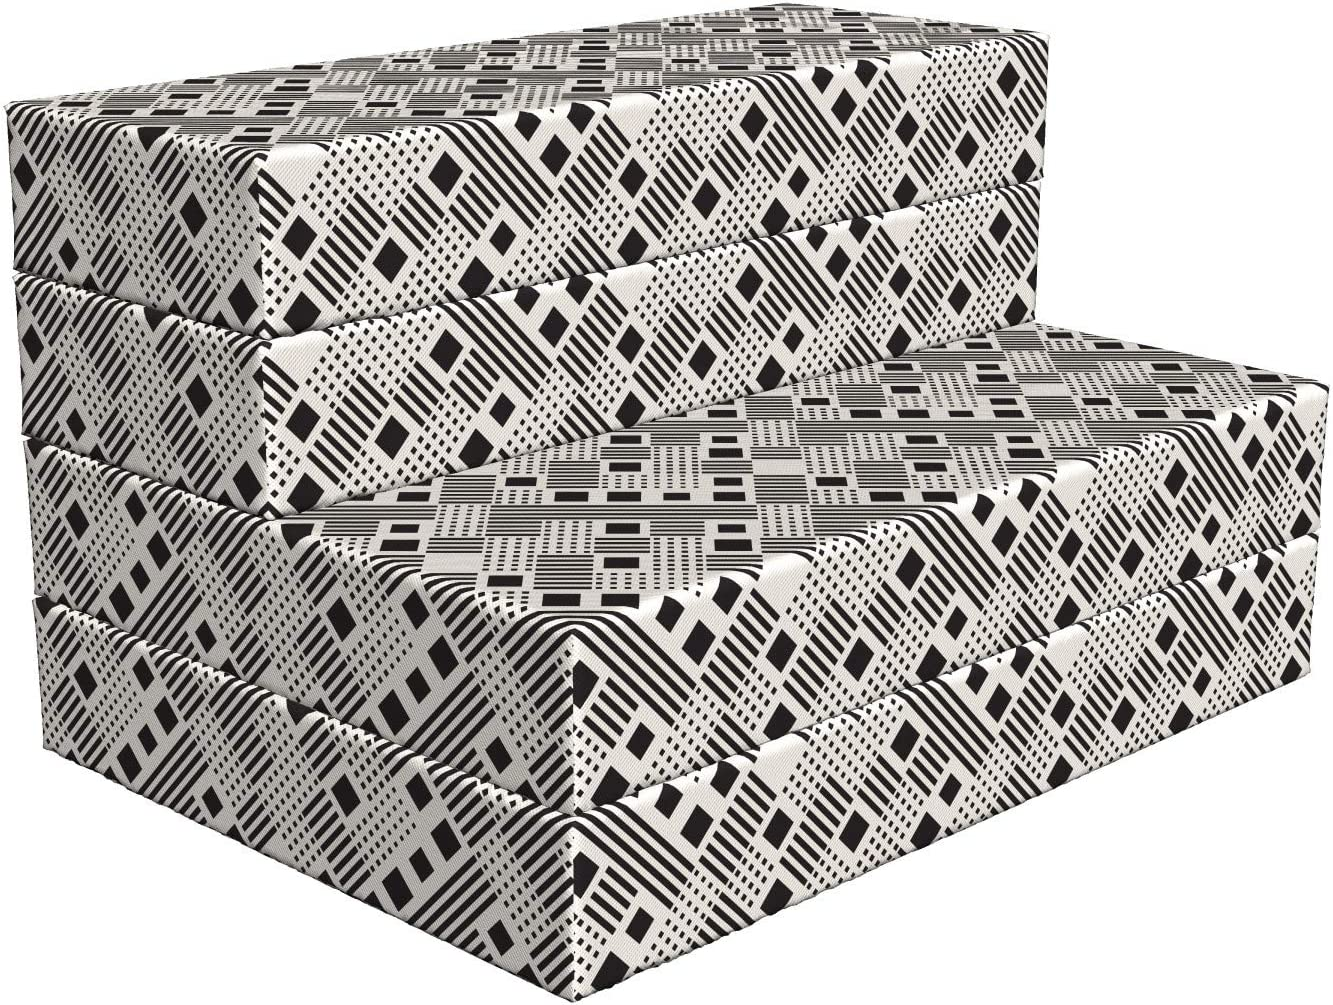 Lunarable Abstract Foldable Mattress Stripes Portland Mall Geometric Squares Same day shipping